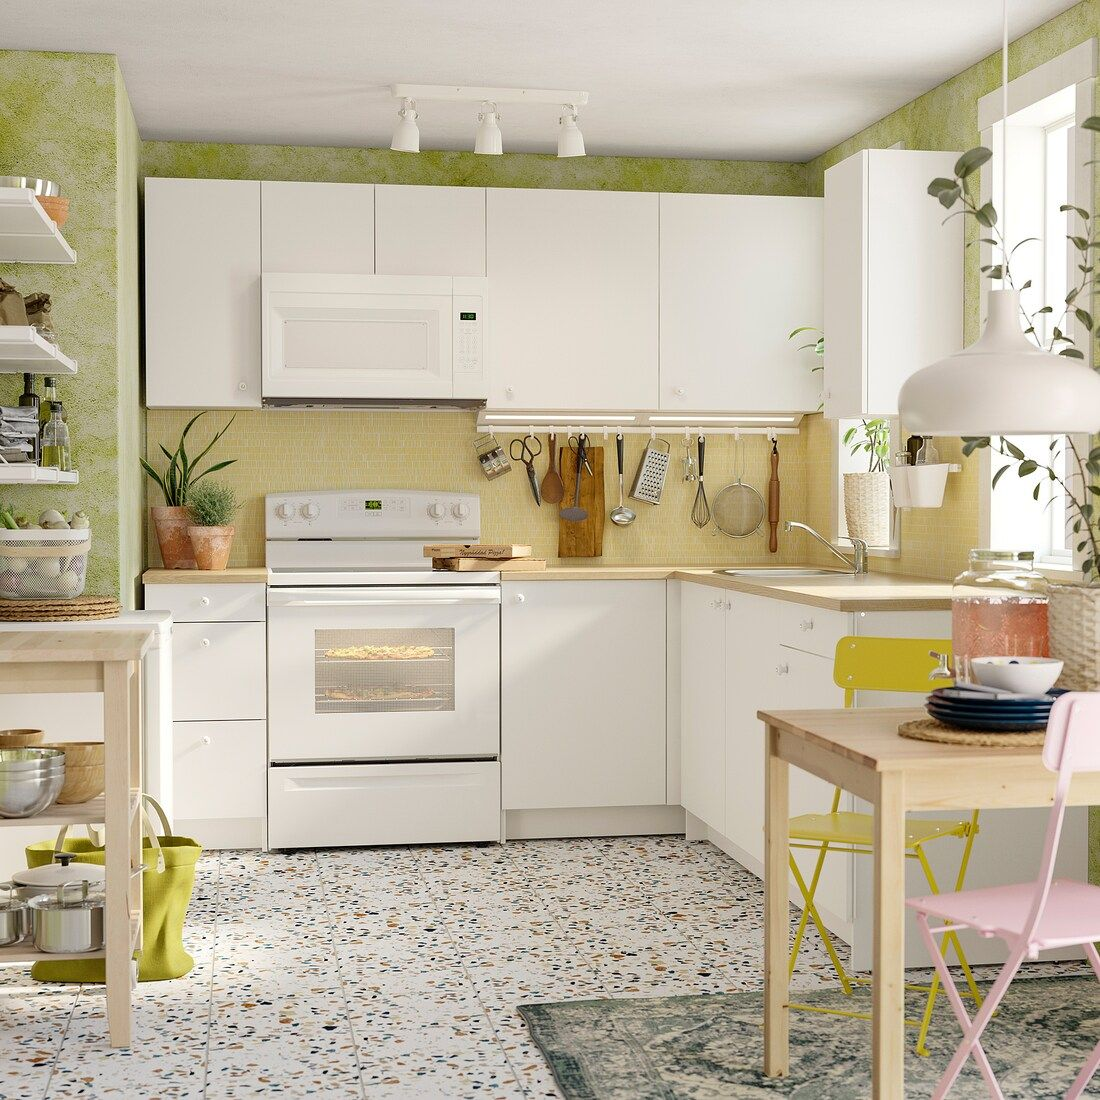 Half Wall For Dishes For Entryway Glass Kitchen Cabinets Glass Kitchen Cabinet Doors Living Room Kitchen